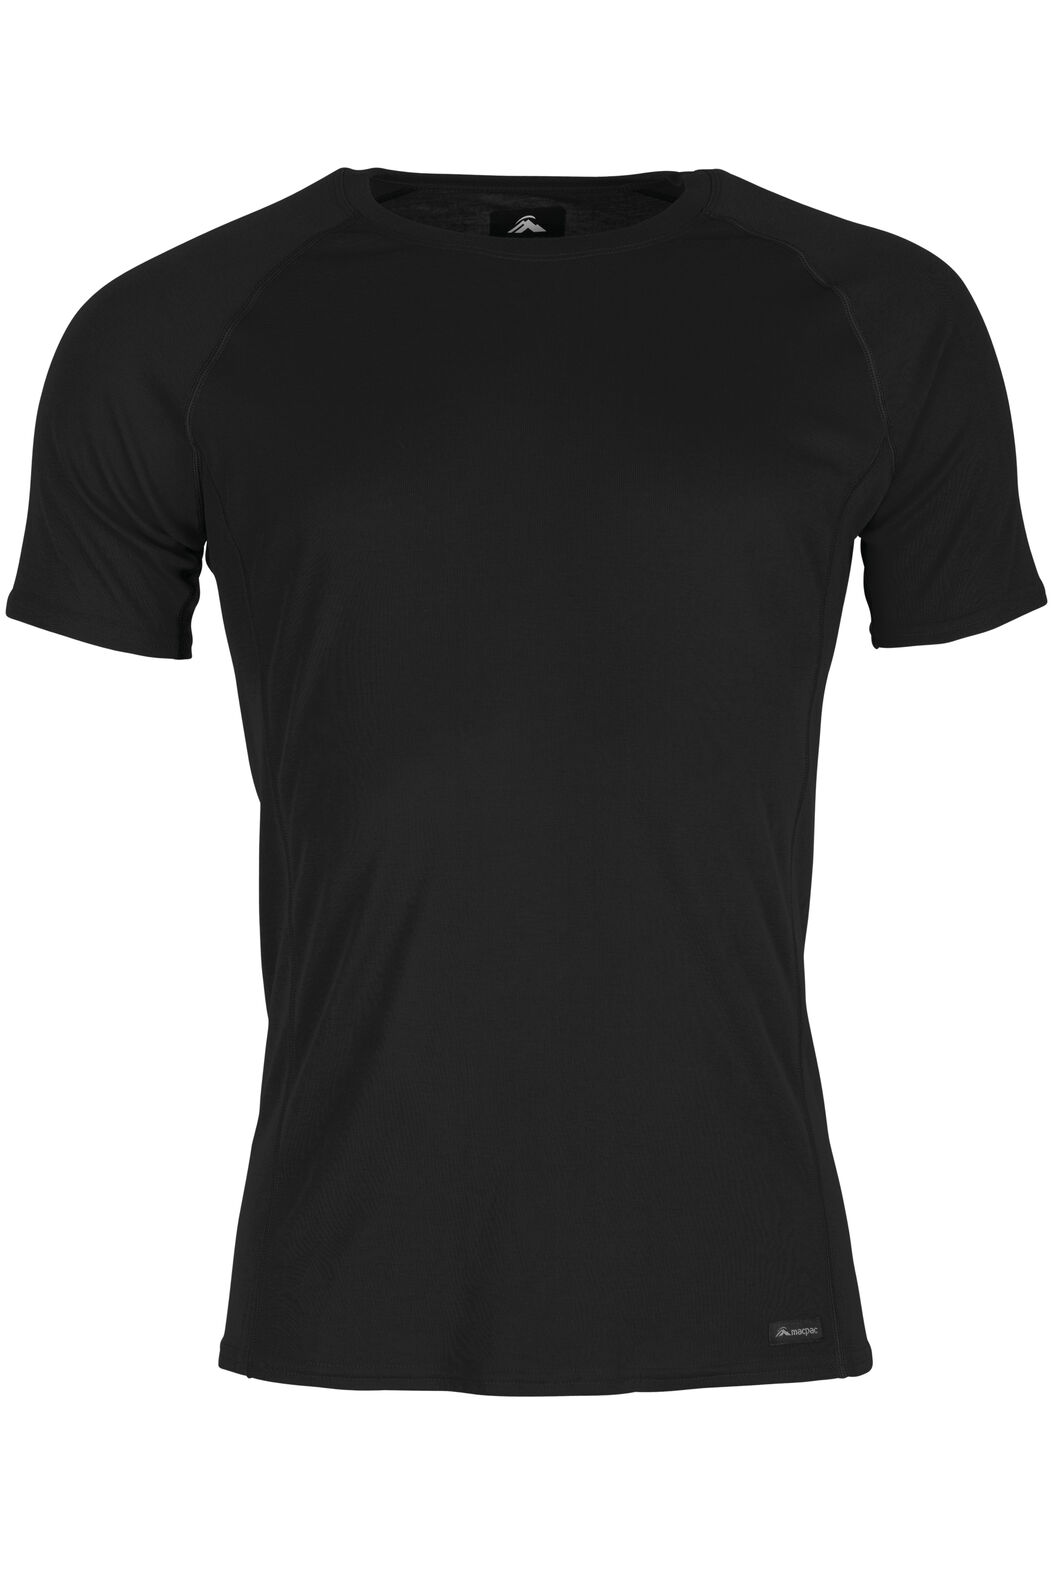 Macpac Geothermal Short Sleeve Top - Men's, Black, hi-res